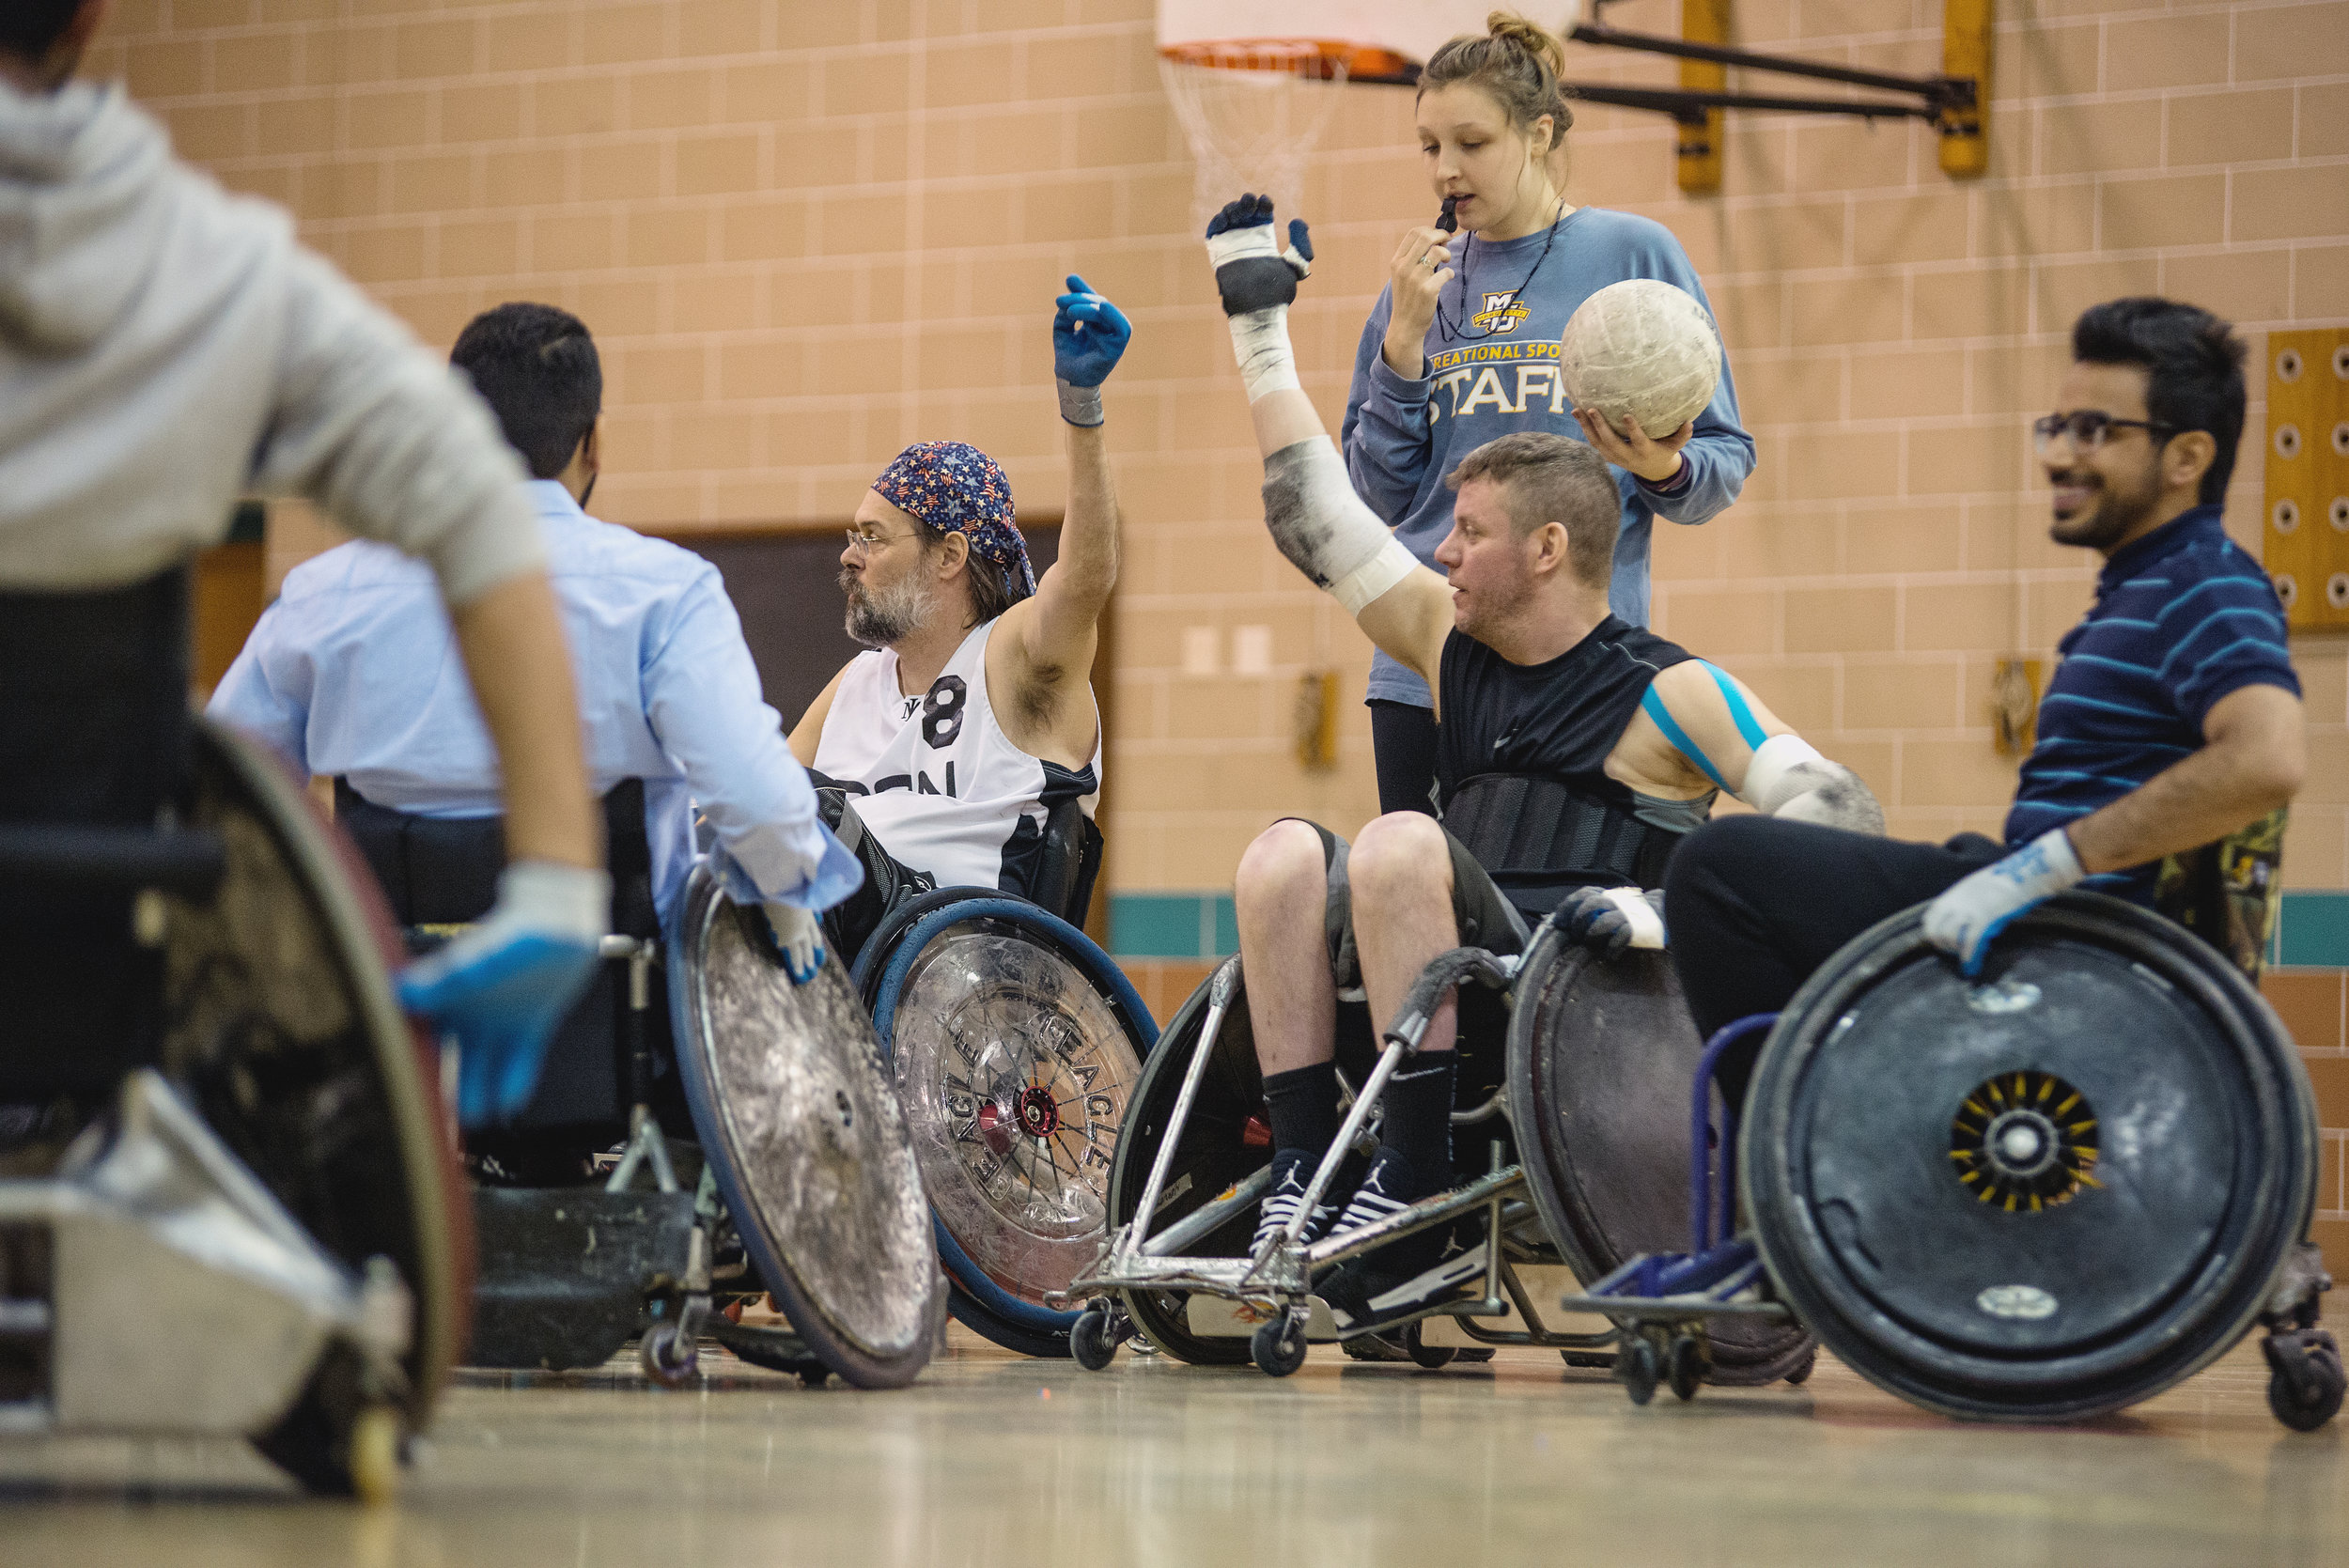 Members of the Milwaukee Iron wheelchair rugby team scrimmage with students (Photo by Marquette University)